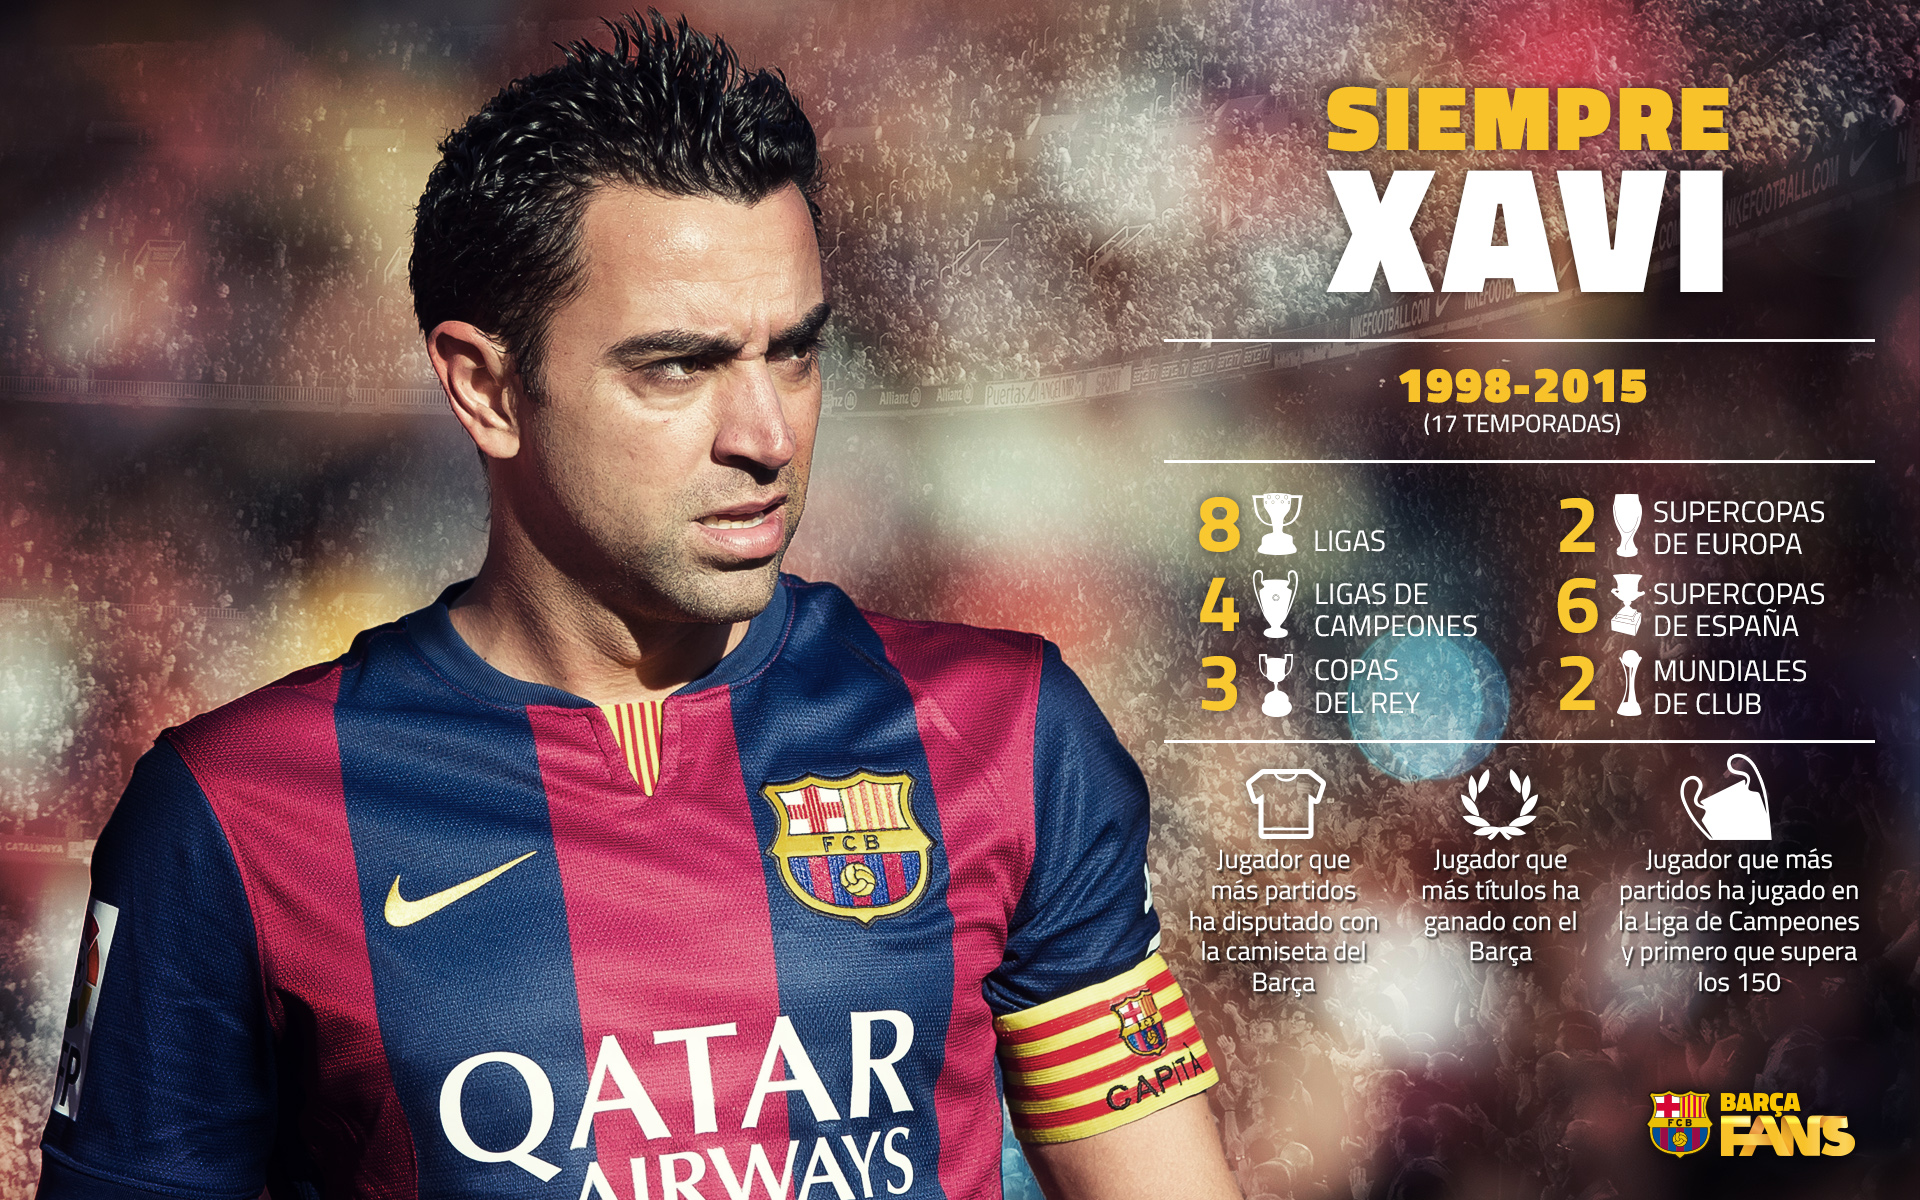 fcb_fans_social_media_xavi_wallpaper